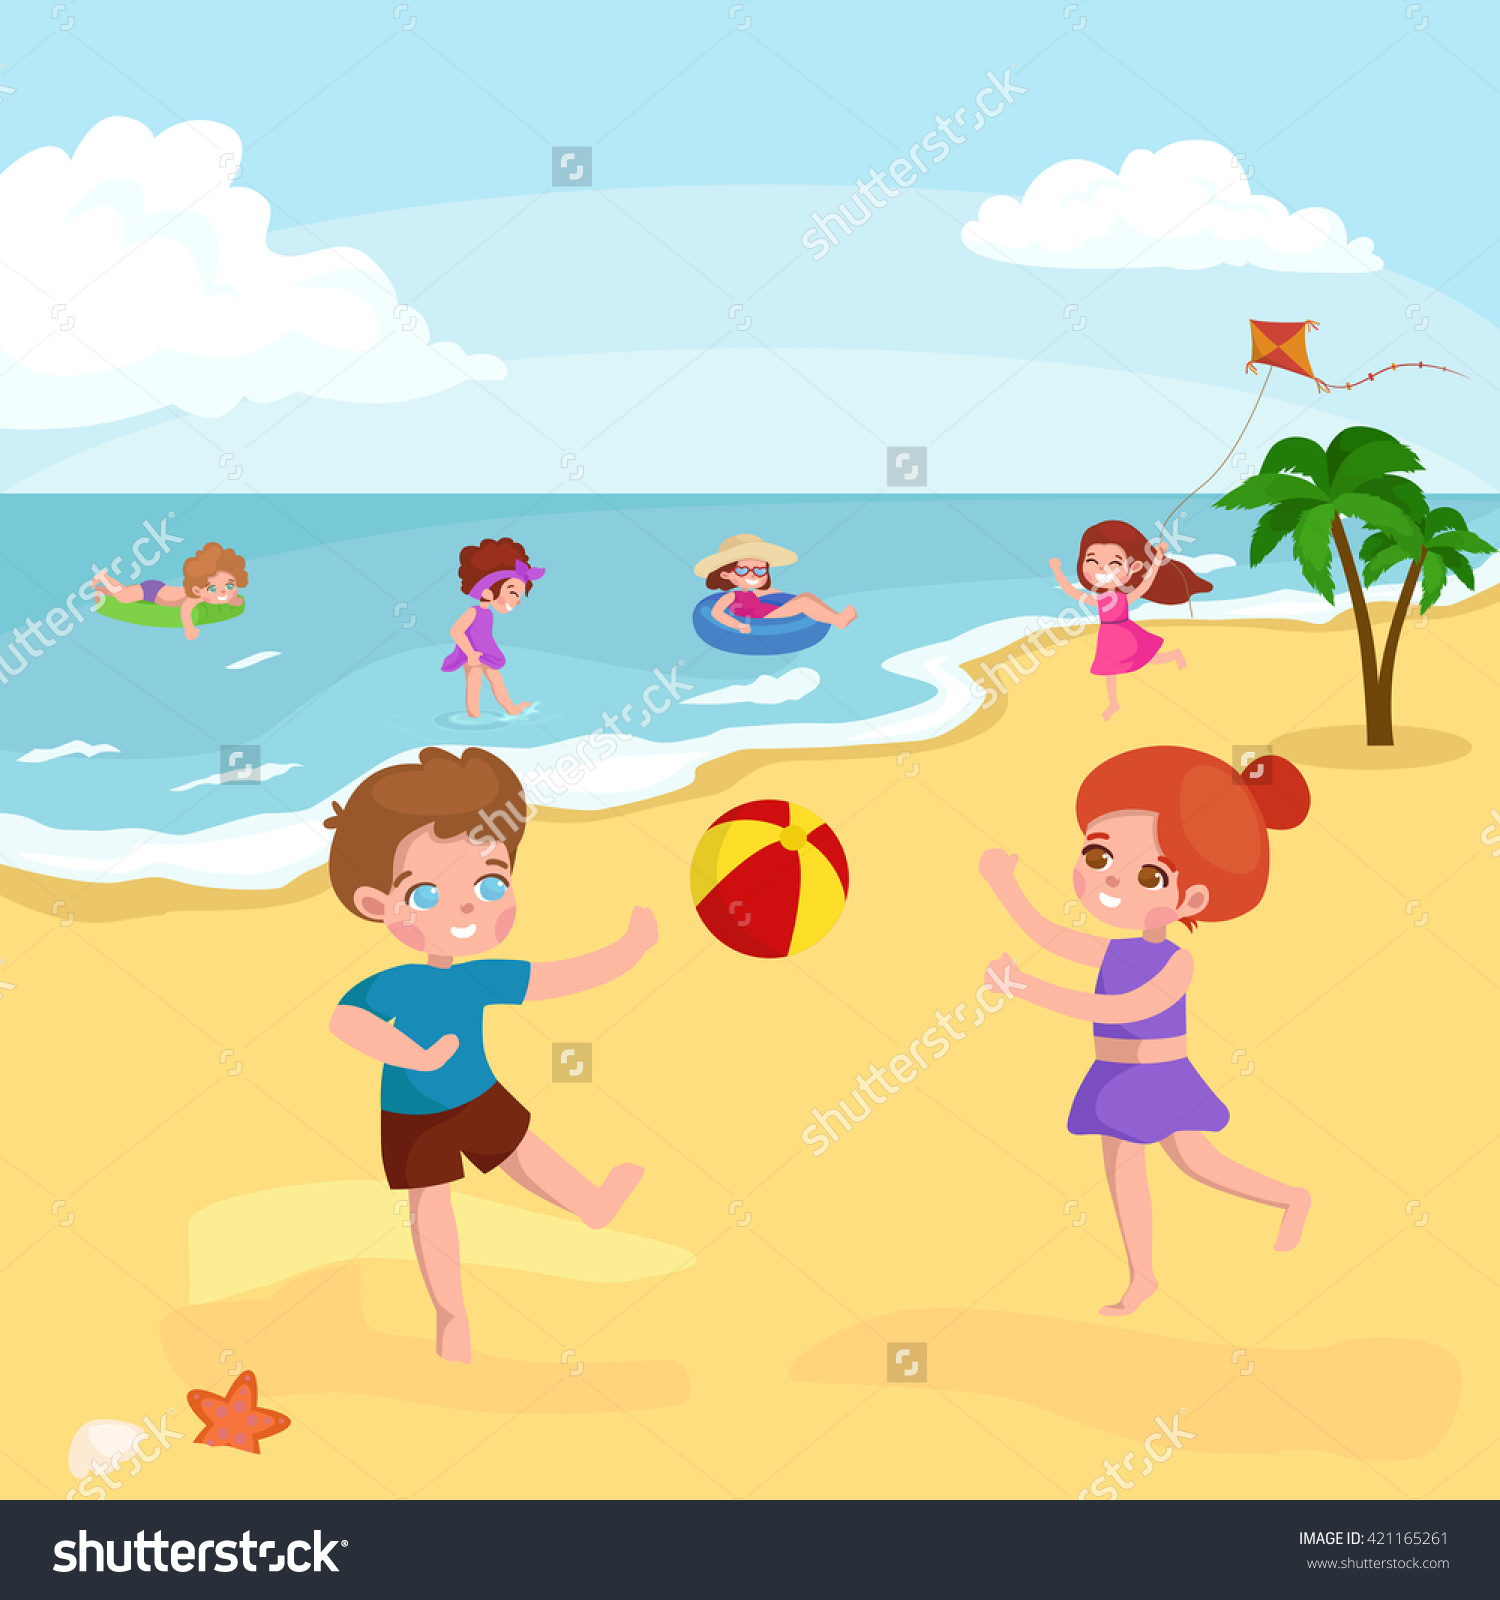 Children Summertime Vacation Parkkids Playing Sand Stock Vector